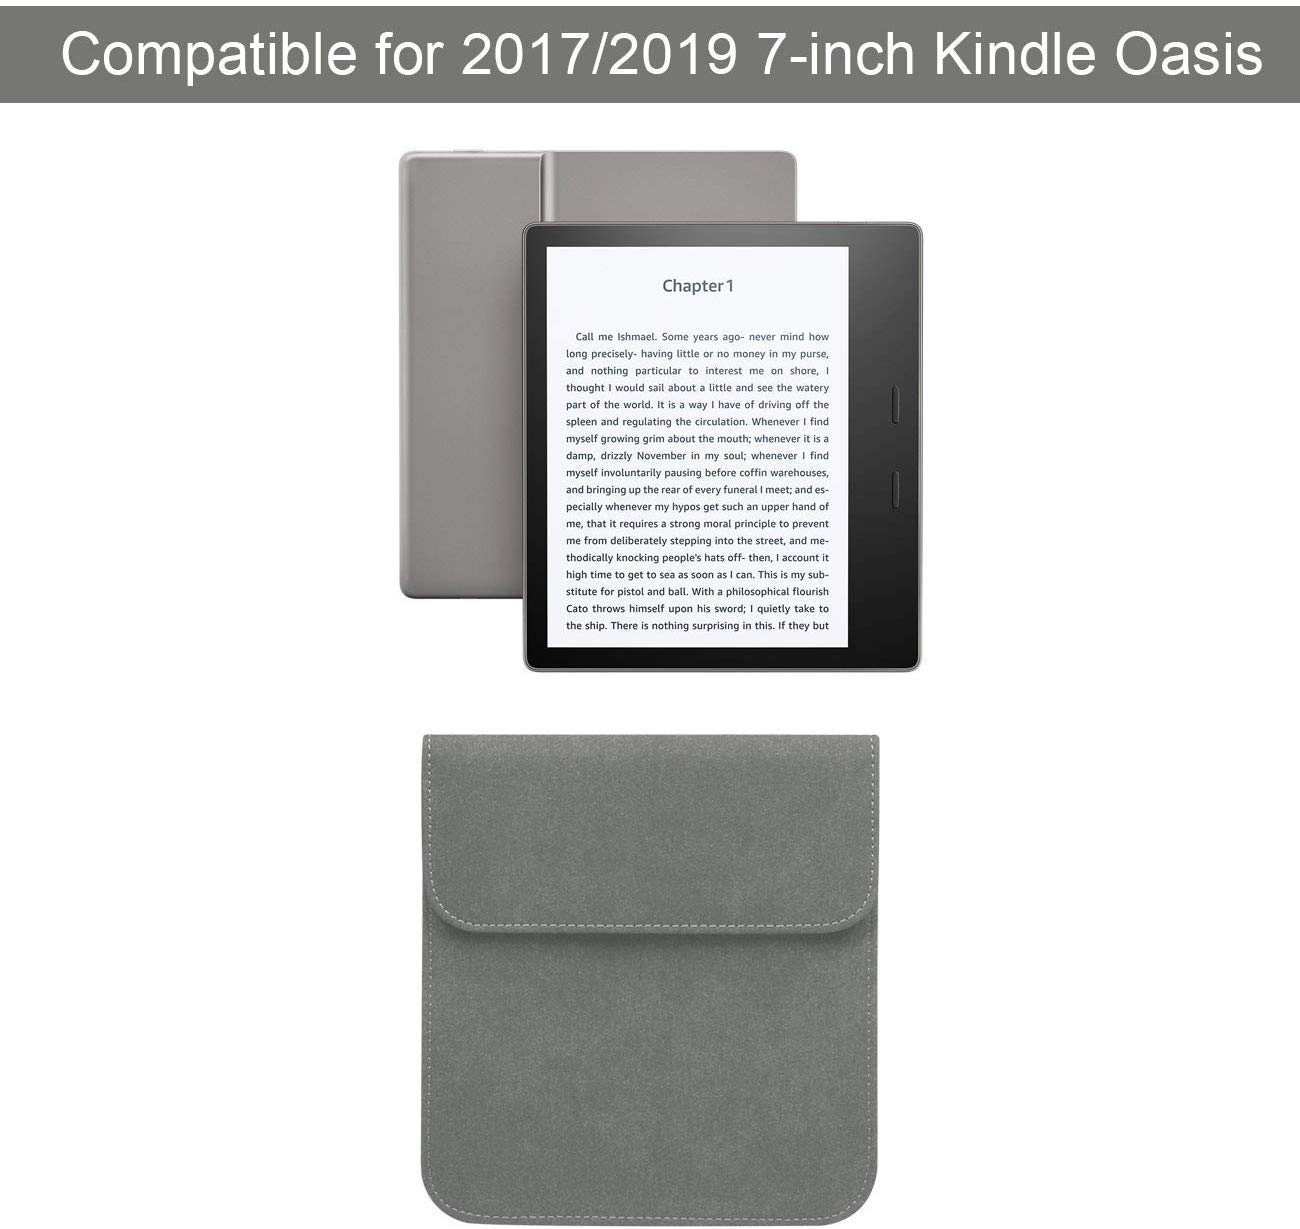 Gray 9th Generation 2017 Emoly Leather Kindle Sleeve for Kindle Paperwhite 7 E-Reader Protective Insert Sleeve Case Cover Bag Fits Kindle Paperwhite 10th Generation 2019